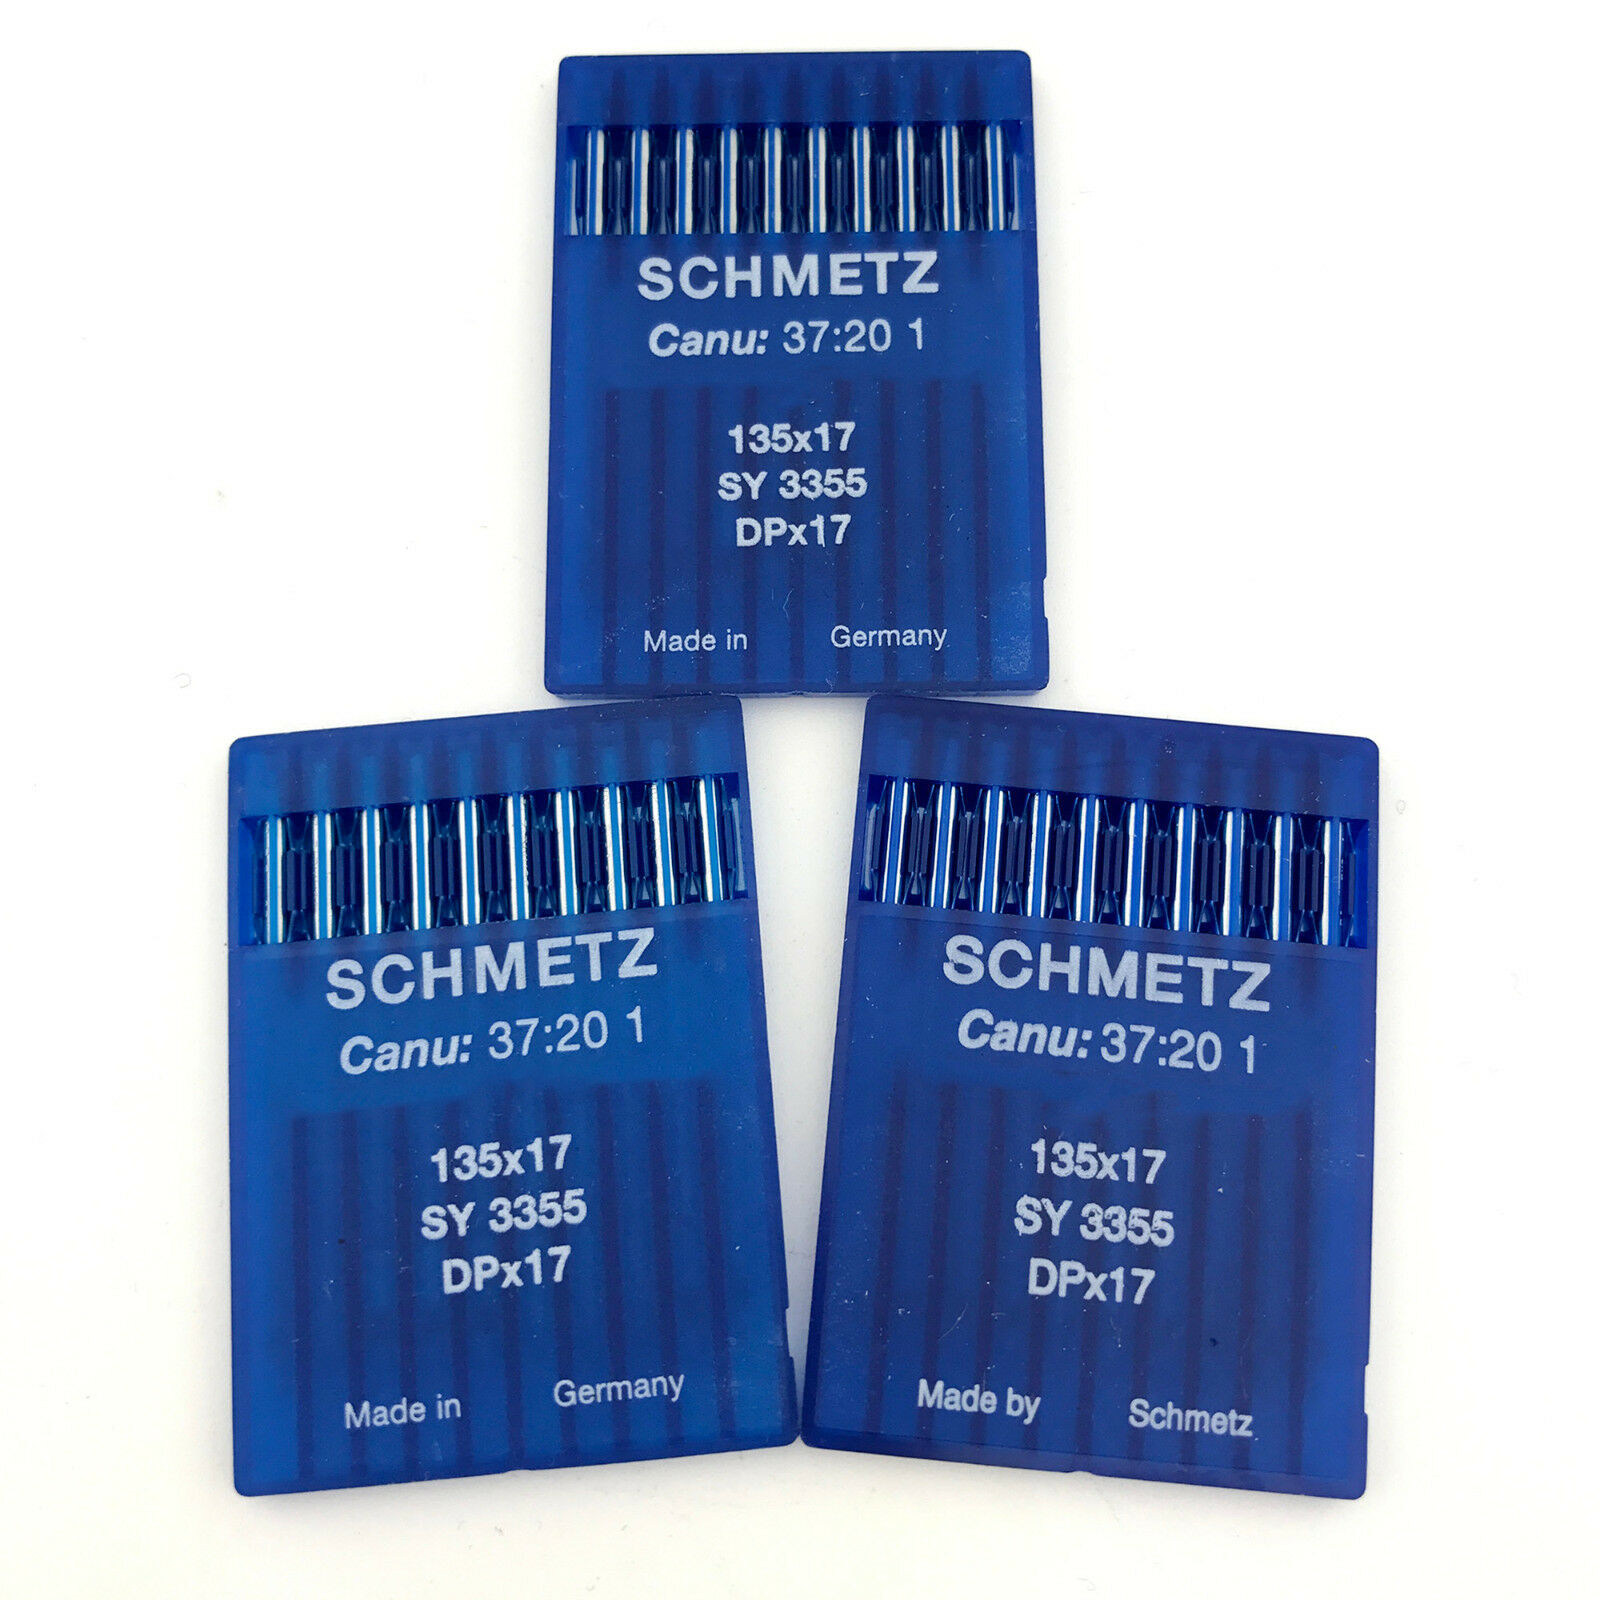 135X5 DPX5 CANU:20:05 1 Industrial Sewing Machine Needles Size 19 Metric 120 100 Schmetz 134 R